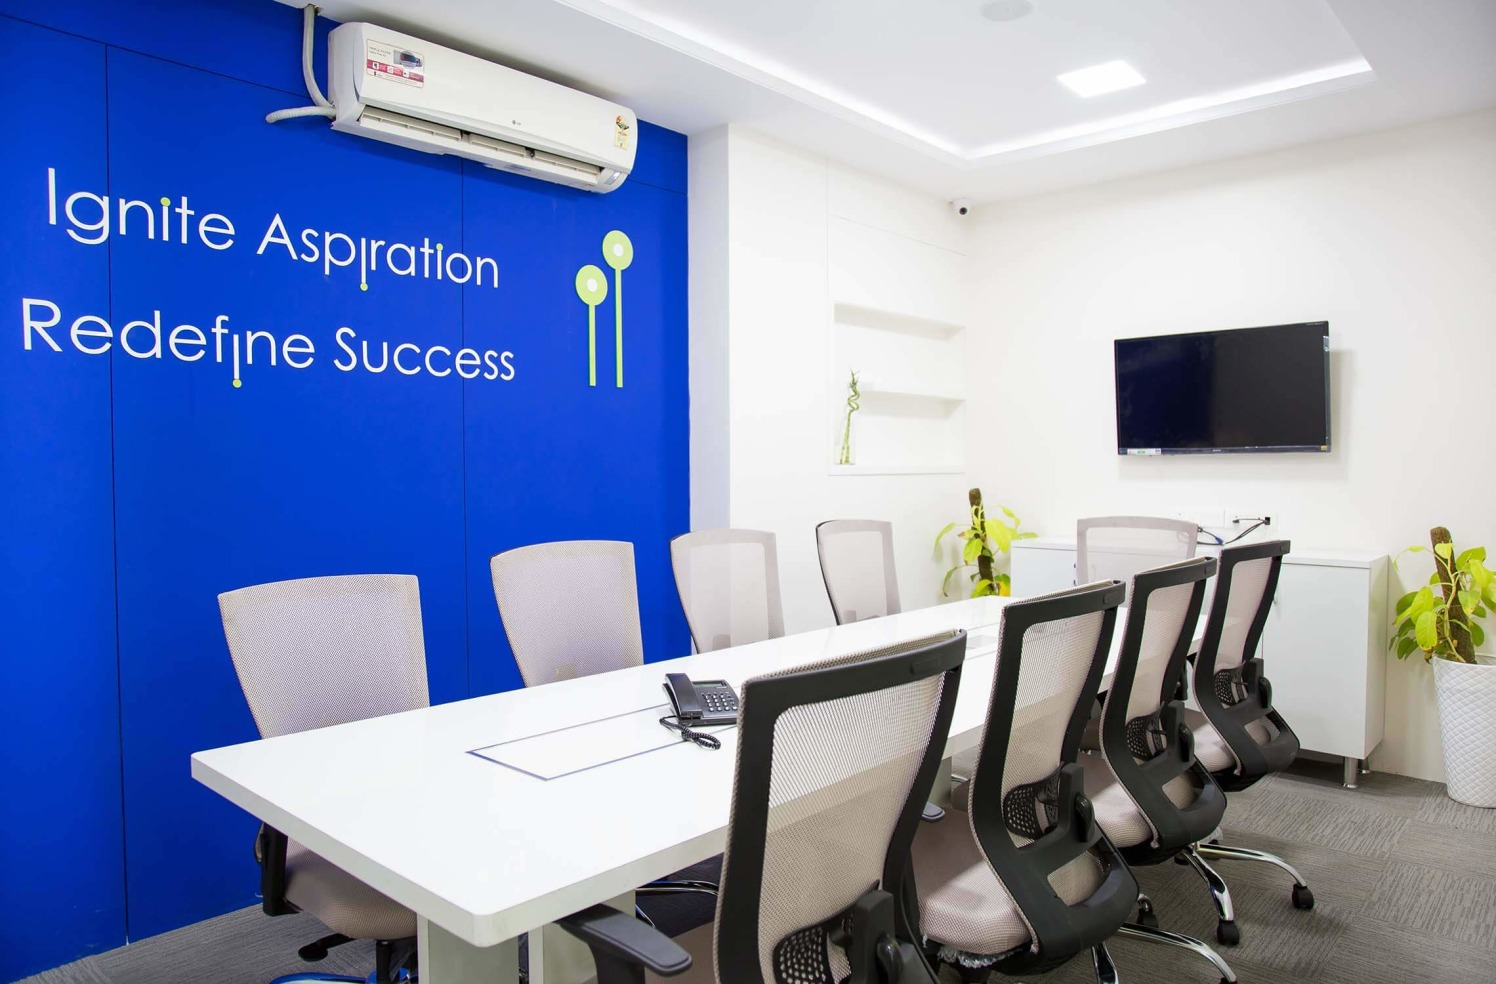 Conference Room with White Table and Blue Wall by Trupti Ladda Contemporary | Interior Design Photos & Ideas